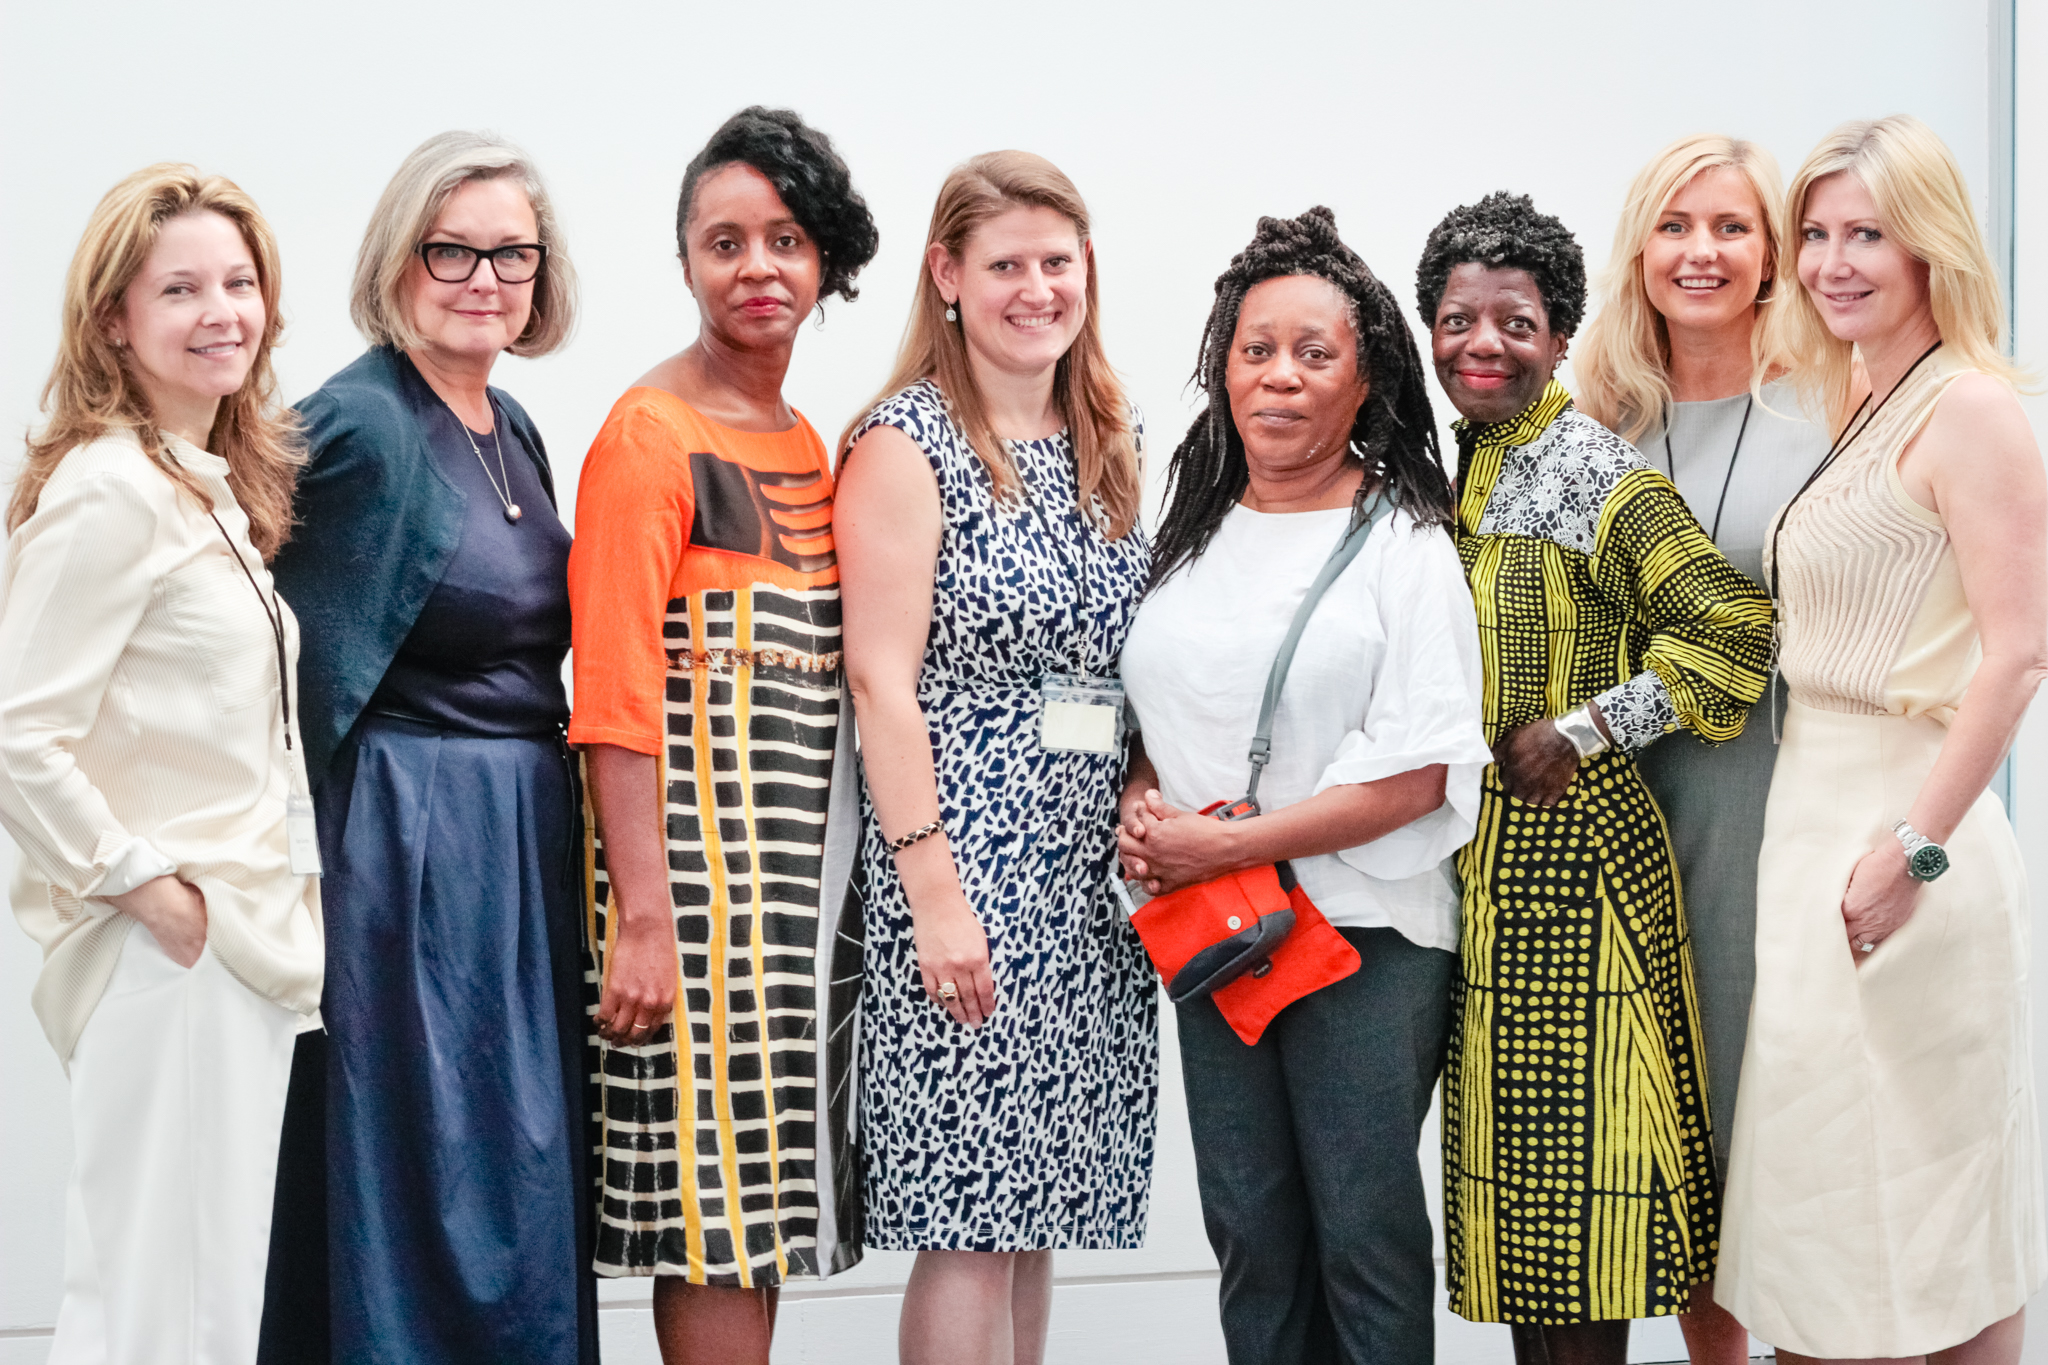 AWITA founders with the four invited panelists.